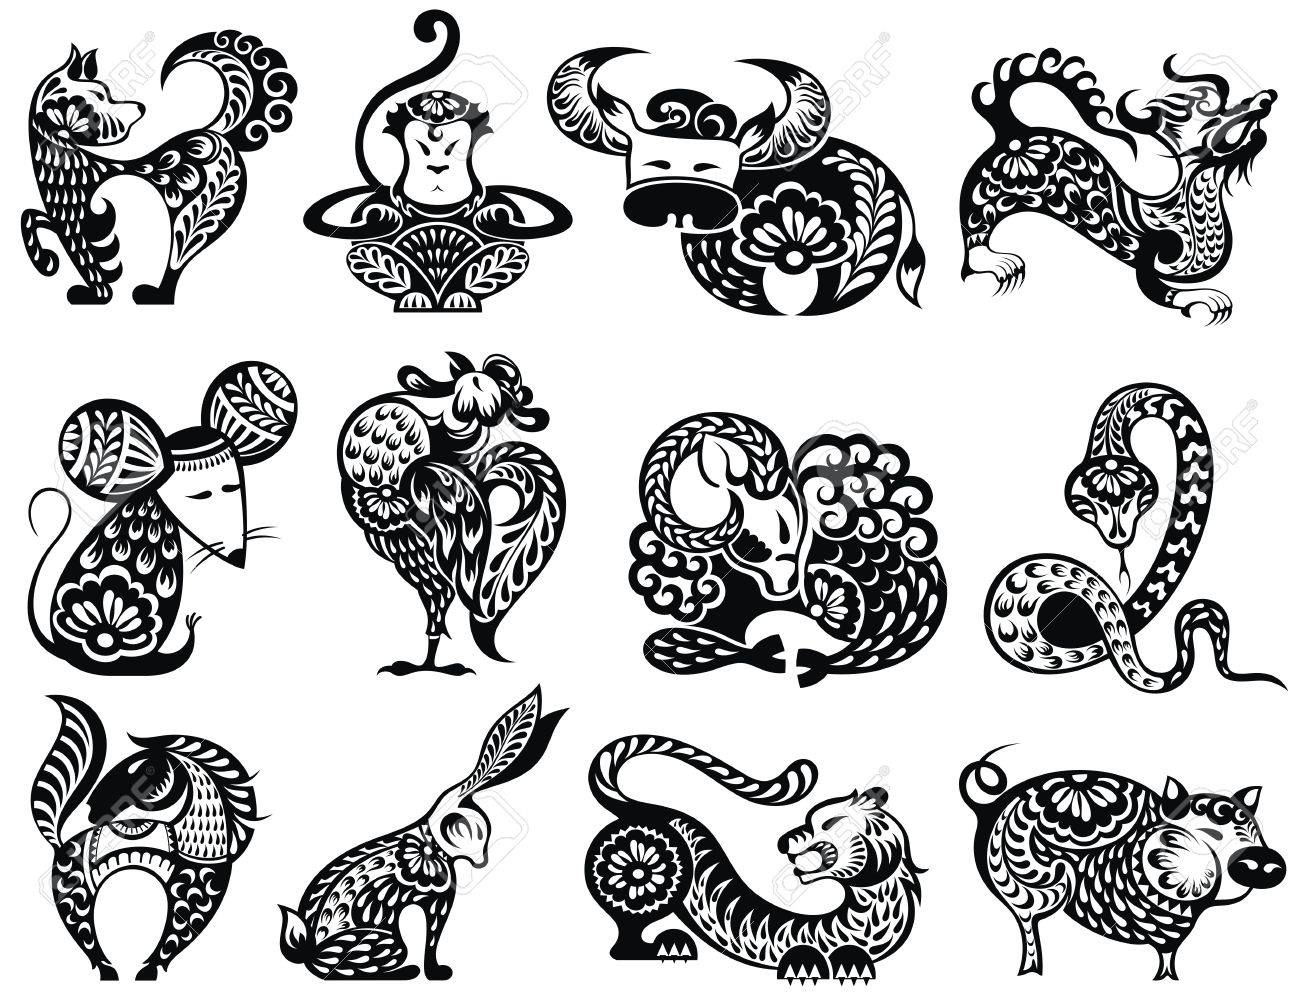 12 Chinese zodiac signs with decorative elements - 87859909